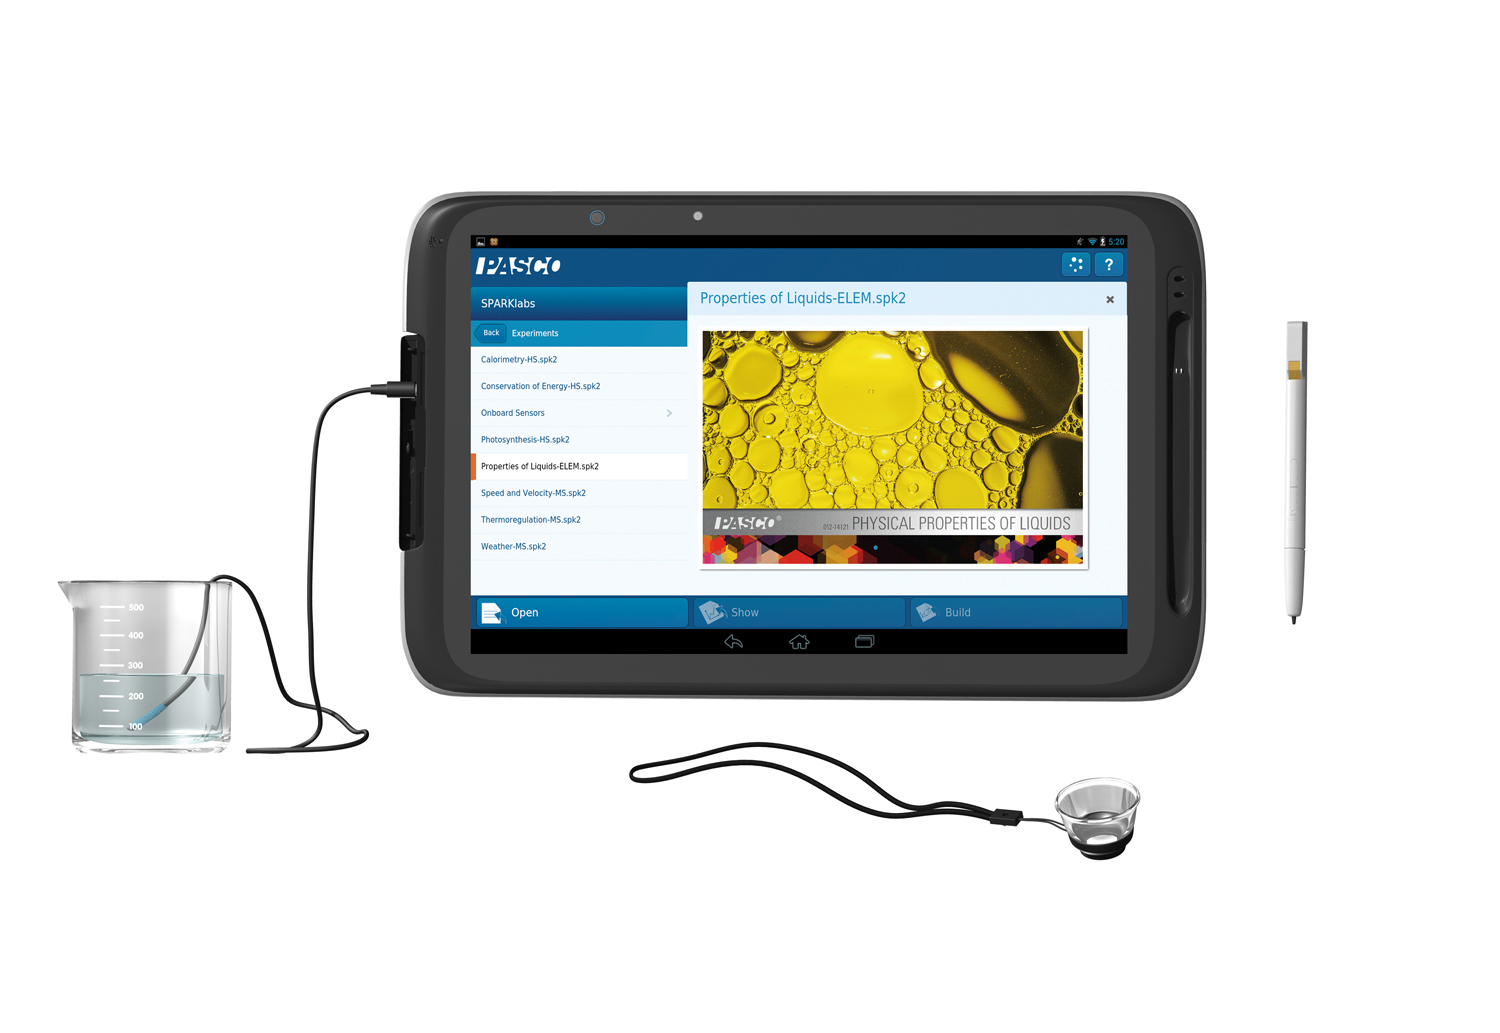 Intel Education Tablet: The 10-inch Intel® Education Tablet features a snap-on magnification lens and plug-in thermal probe. (Photo: Business Wire)